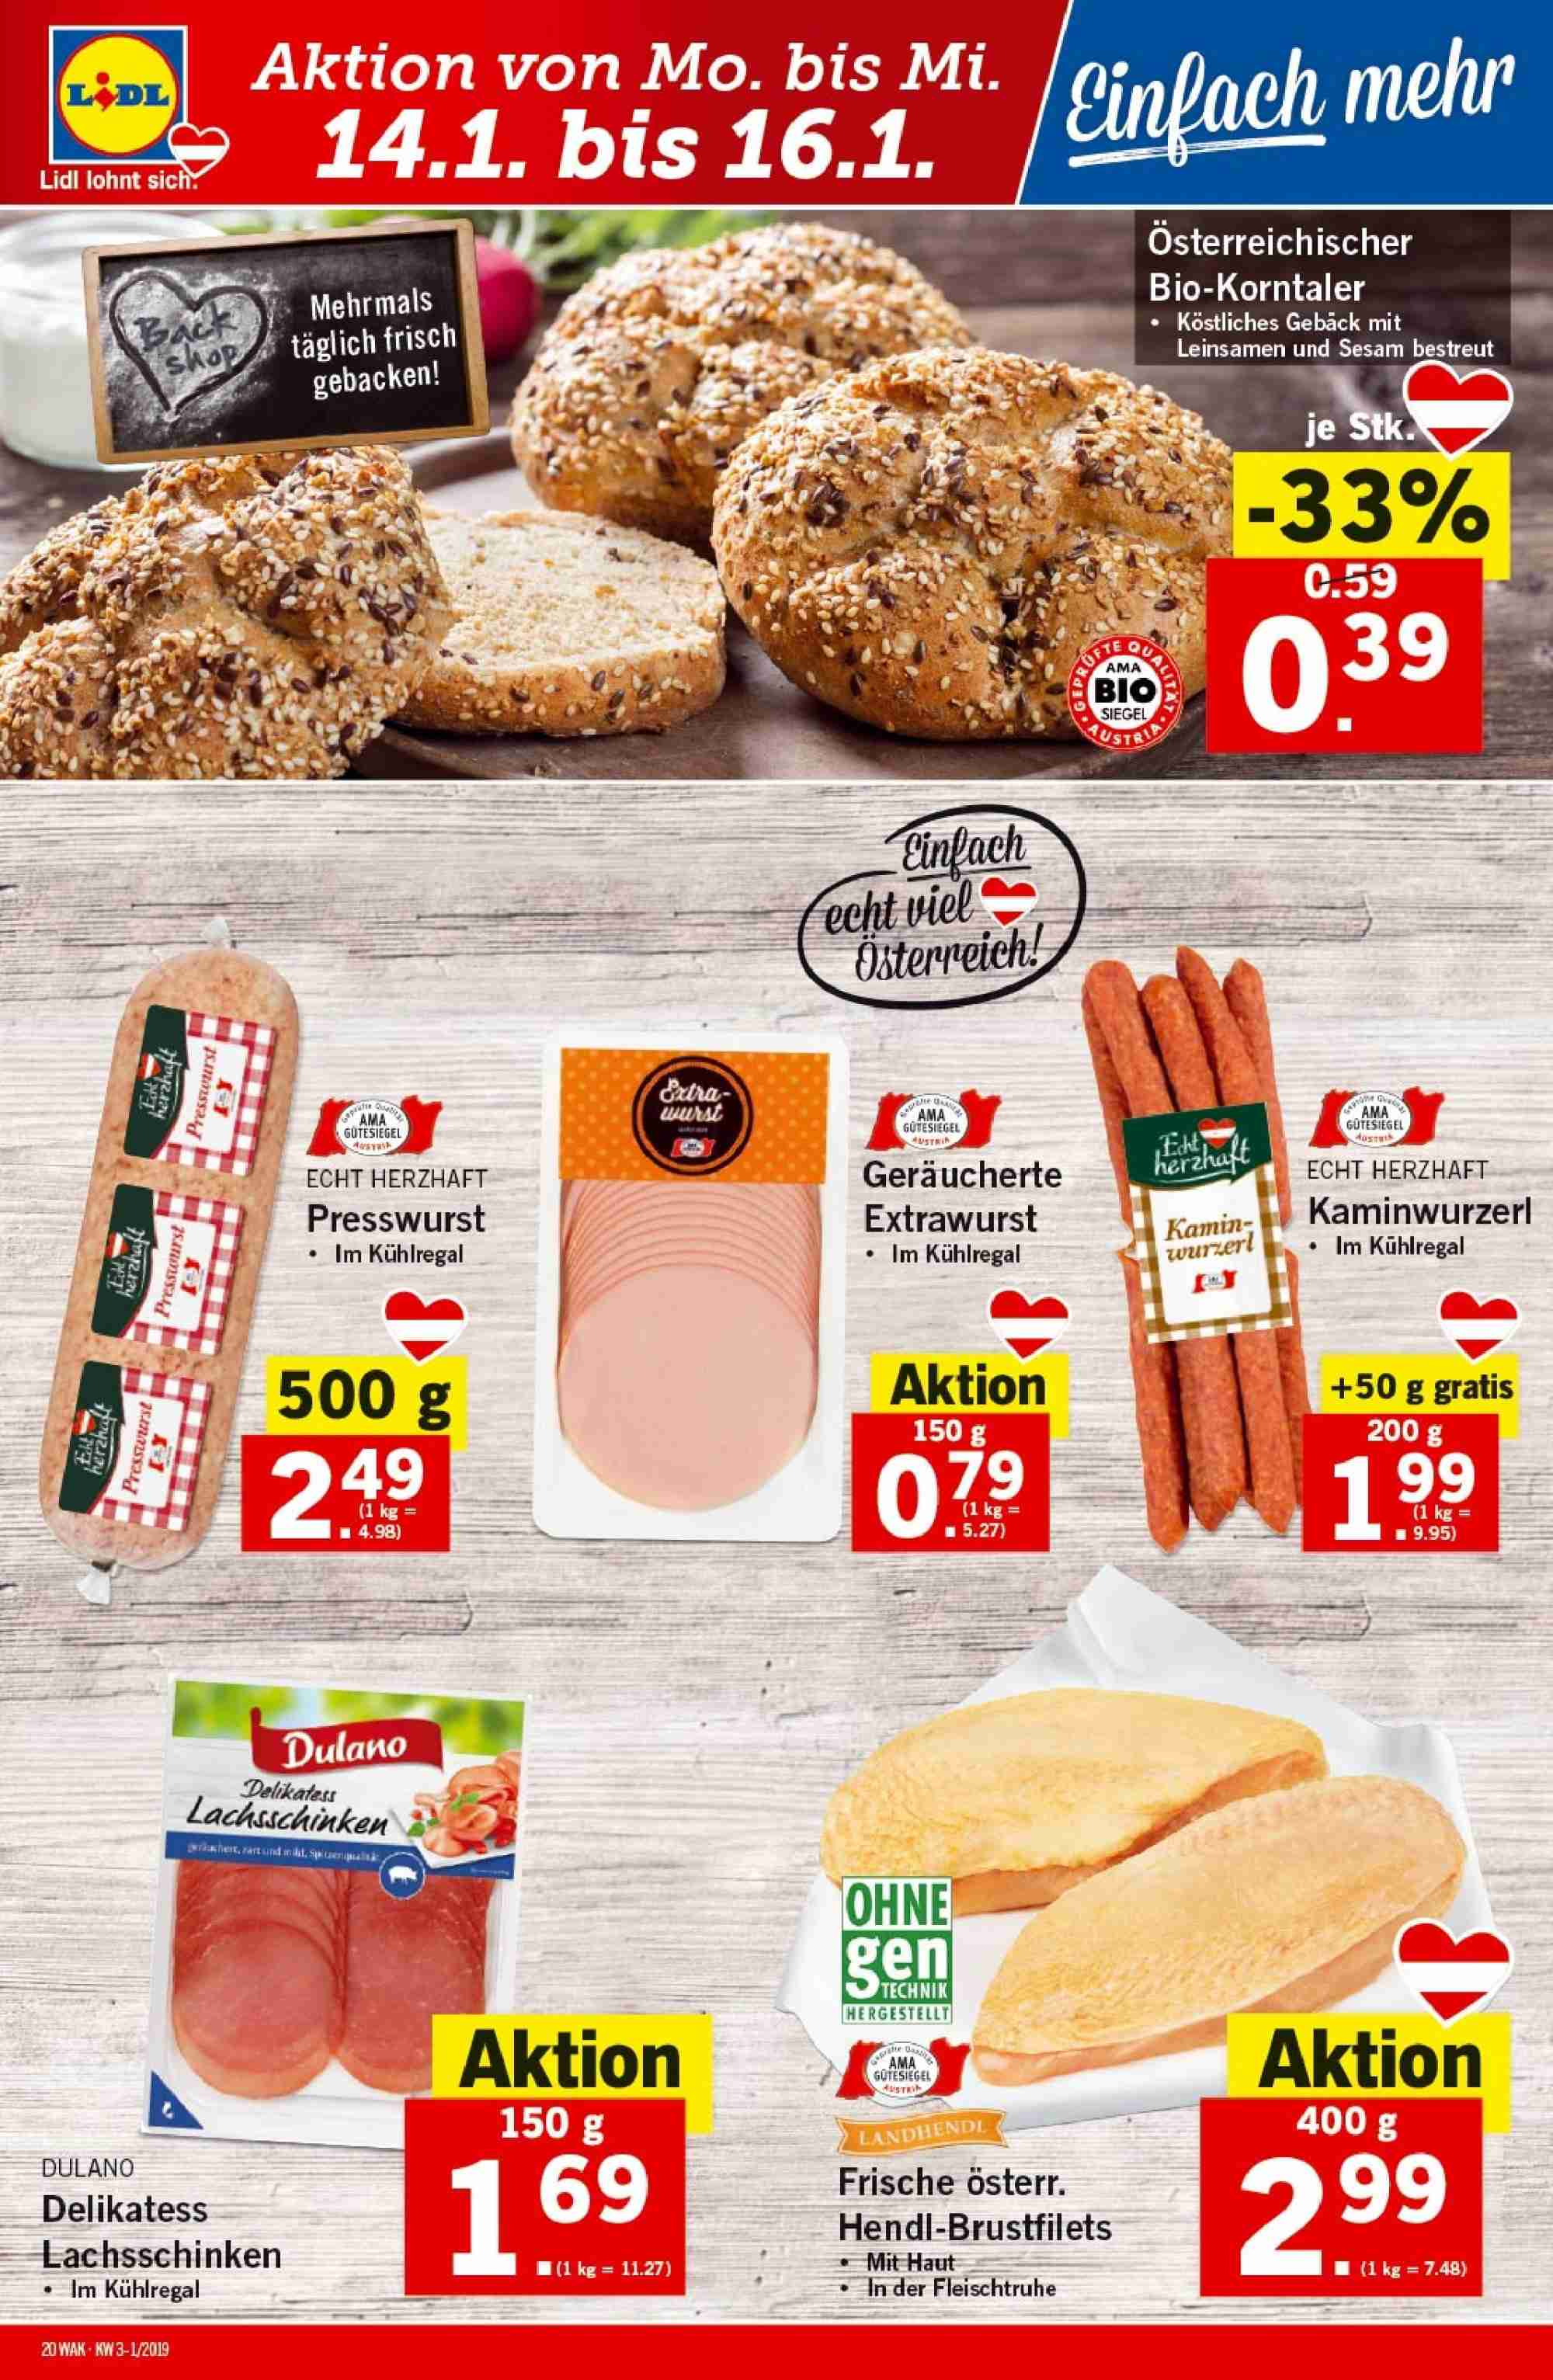 Angebote Lidl - 10.1.2019 - 16.1.2019. Seite 20.